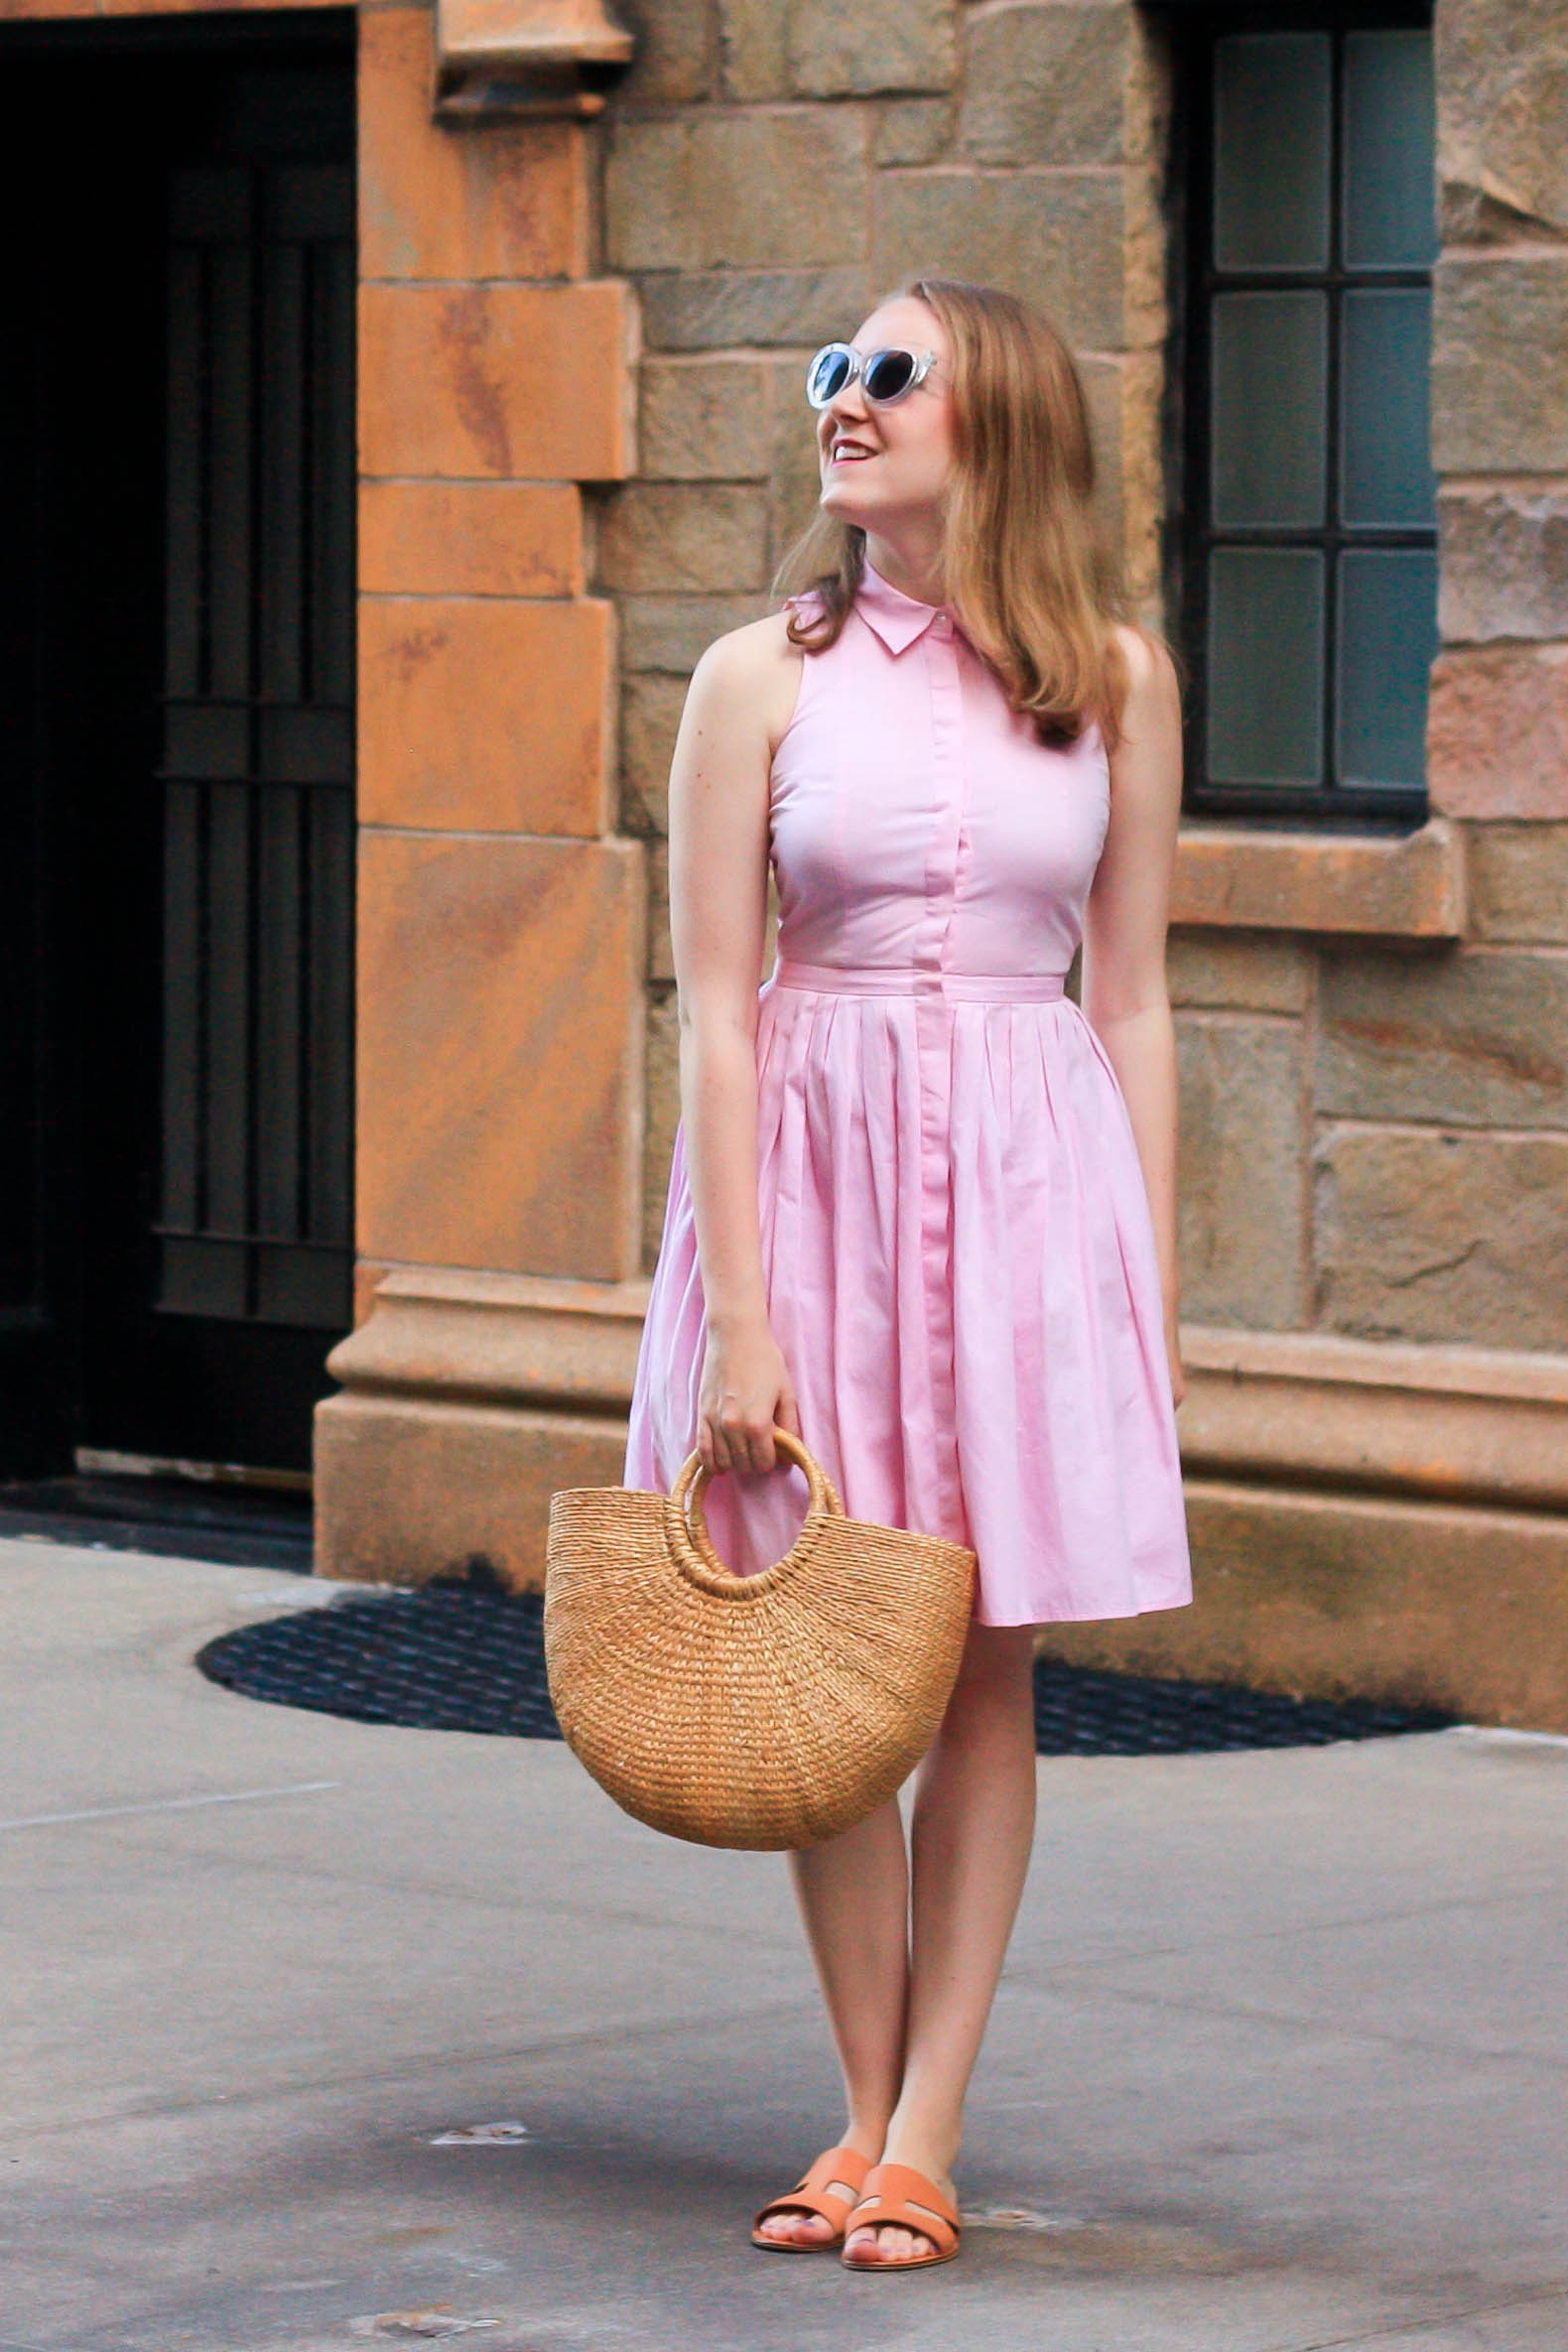 Pink Shirtdress, Everlane Bridge Sandals, Straw Bag and Stain Remover Methods // Pearl Girl